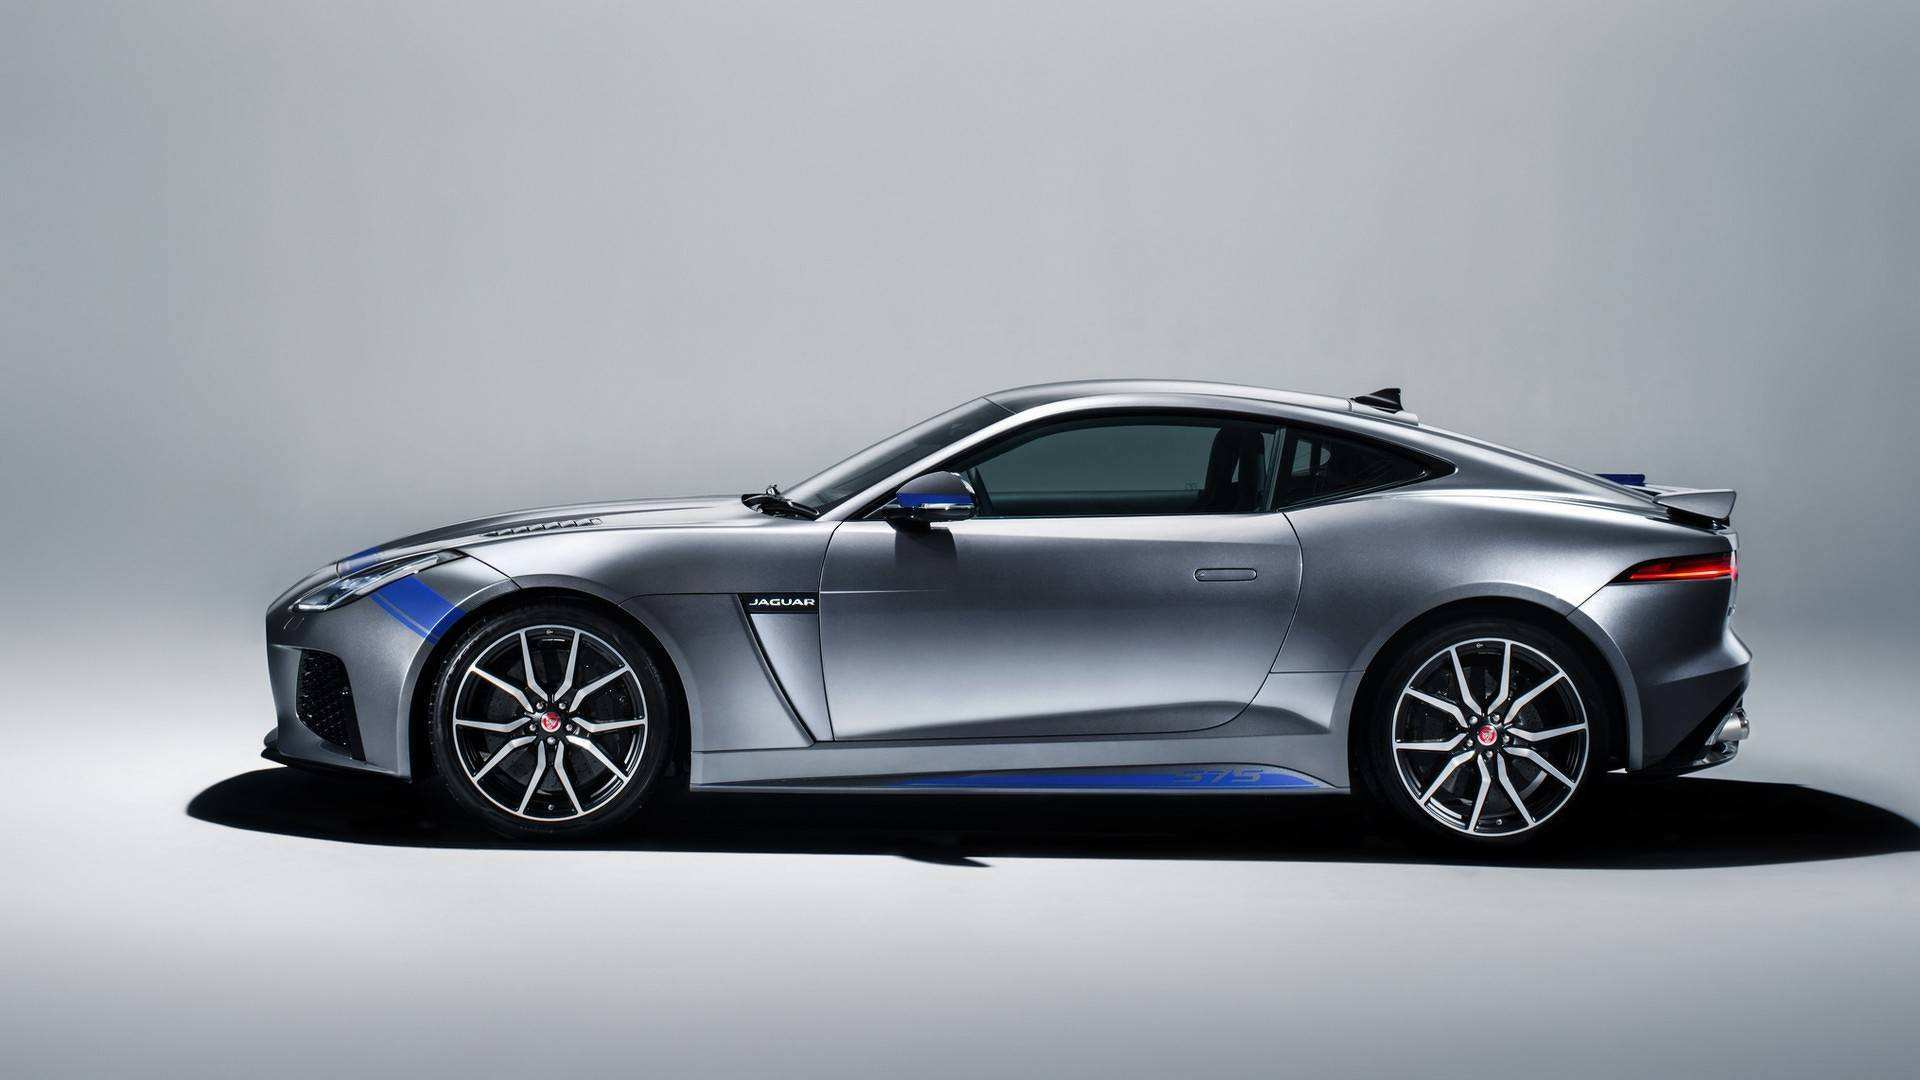 81 The 2020 Jaguar F Type Horsepower Reviews with 2020 Jaguar F Type Horsepower